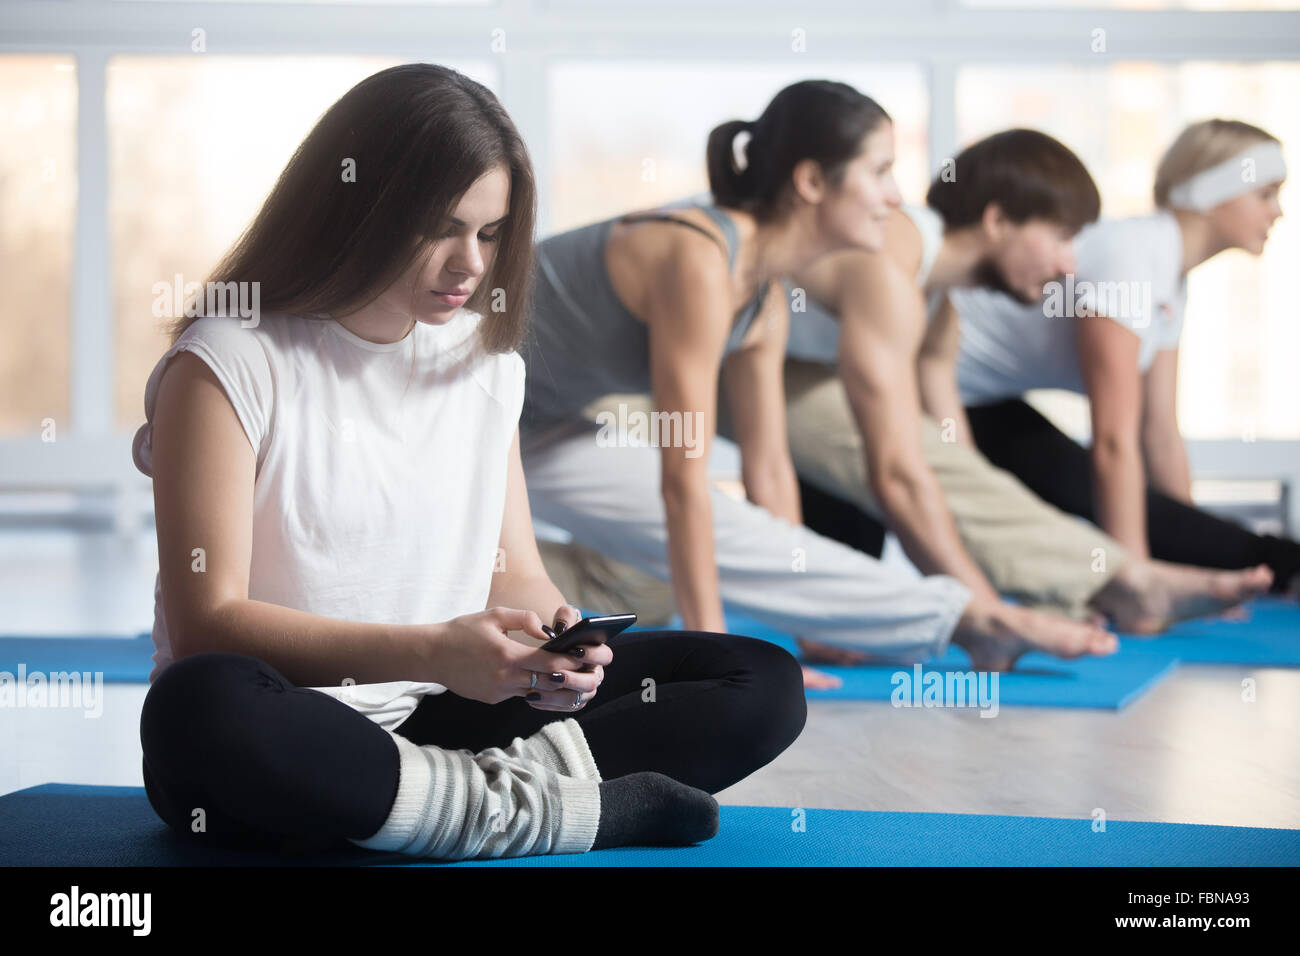 Tired or lazy woman sitting cross-legged, resting during practice in sports club, using phone, reading, sending - Stock Image